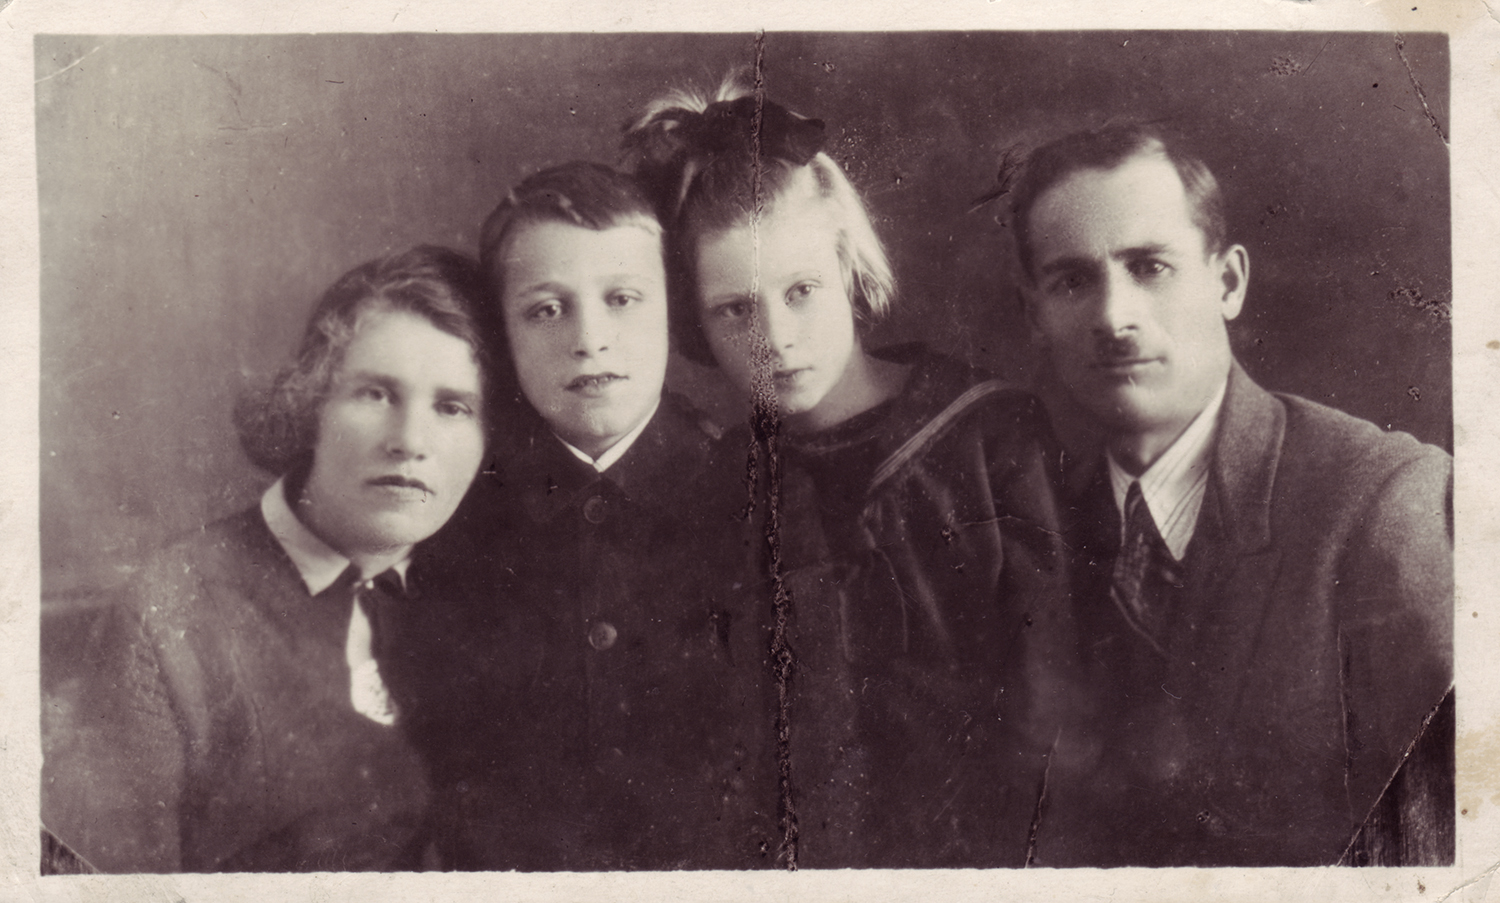 Mikhail Boguslavsky (second from the left) with his mother Rakhil, father Shaya, and sister. Dniepropetrovsk, Ukraine. 1935.